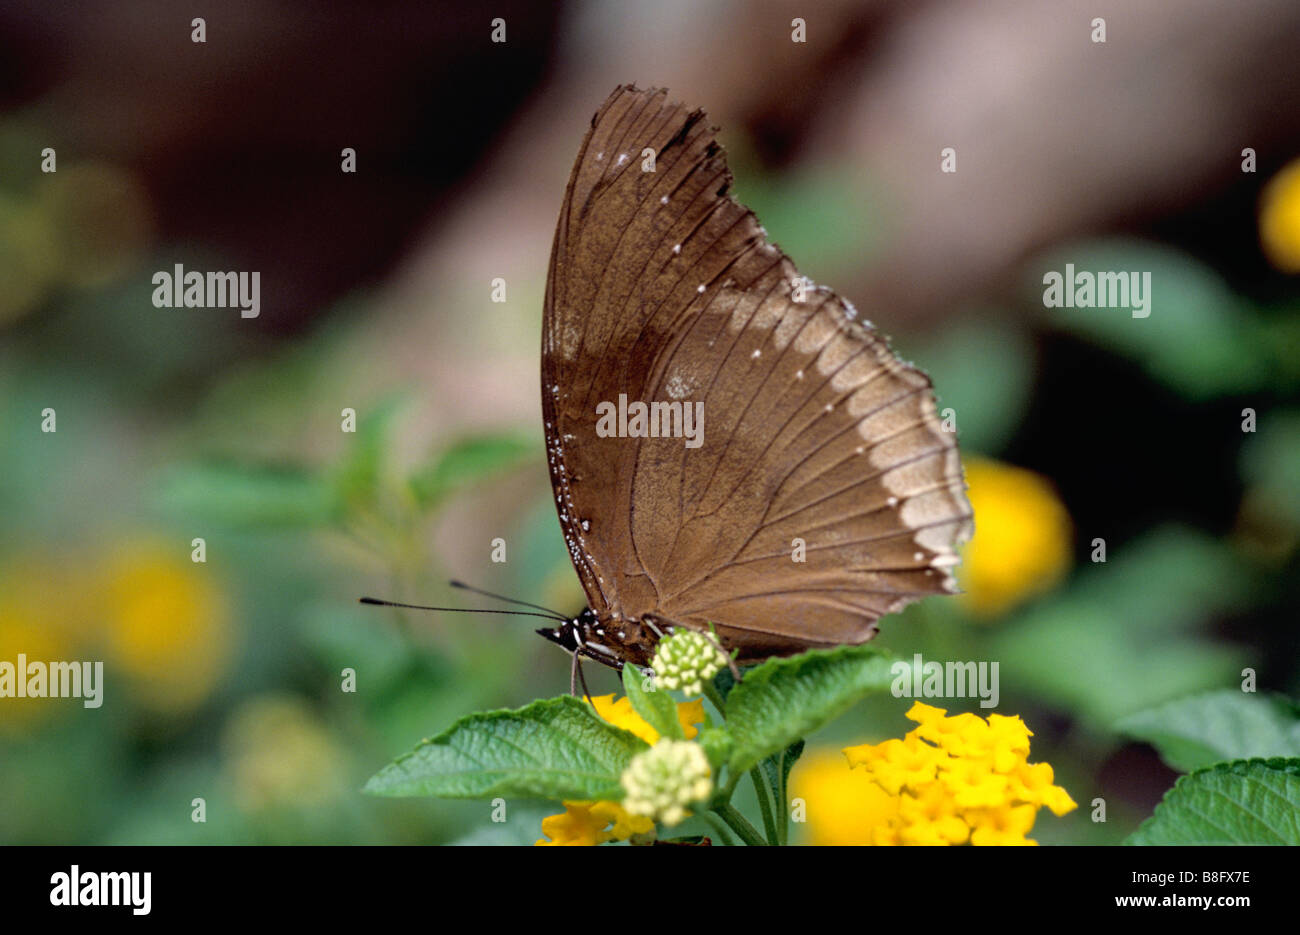 Common Crow Butterfly (Euploea core) from Amboli, Maharashtra, India. - Stock Image